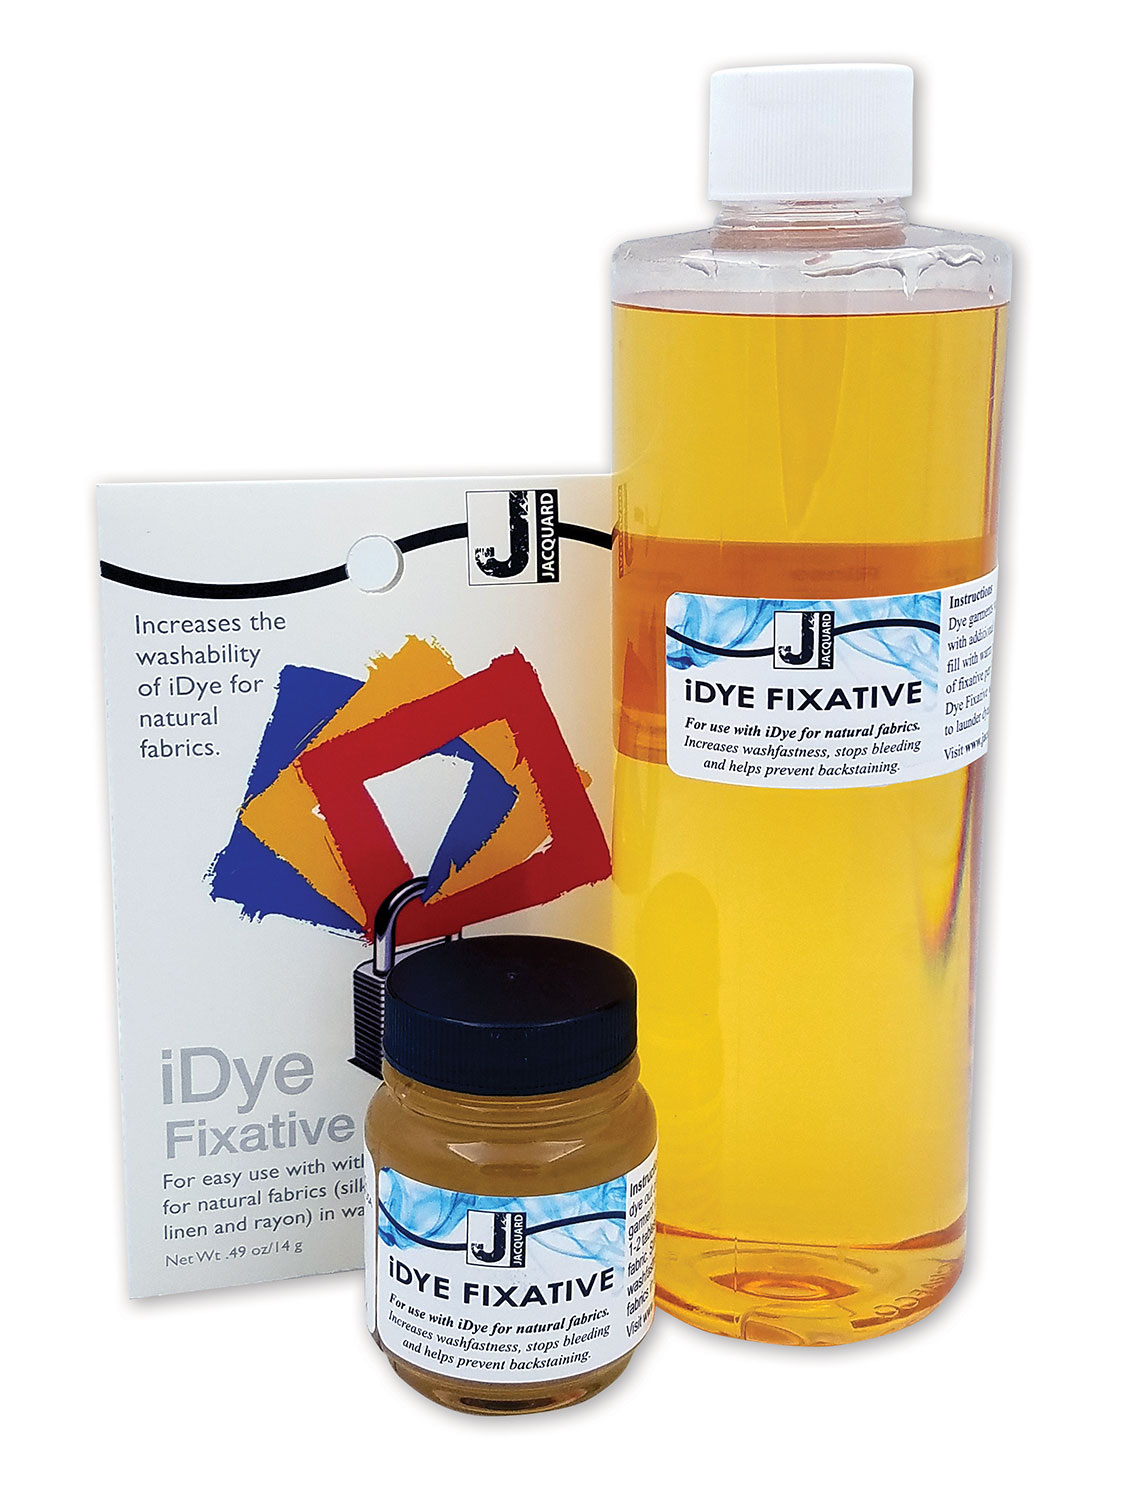 iDye-Fixative-Group.jpg